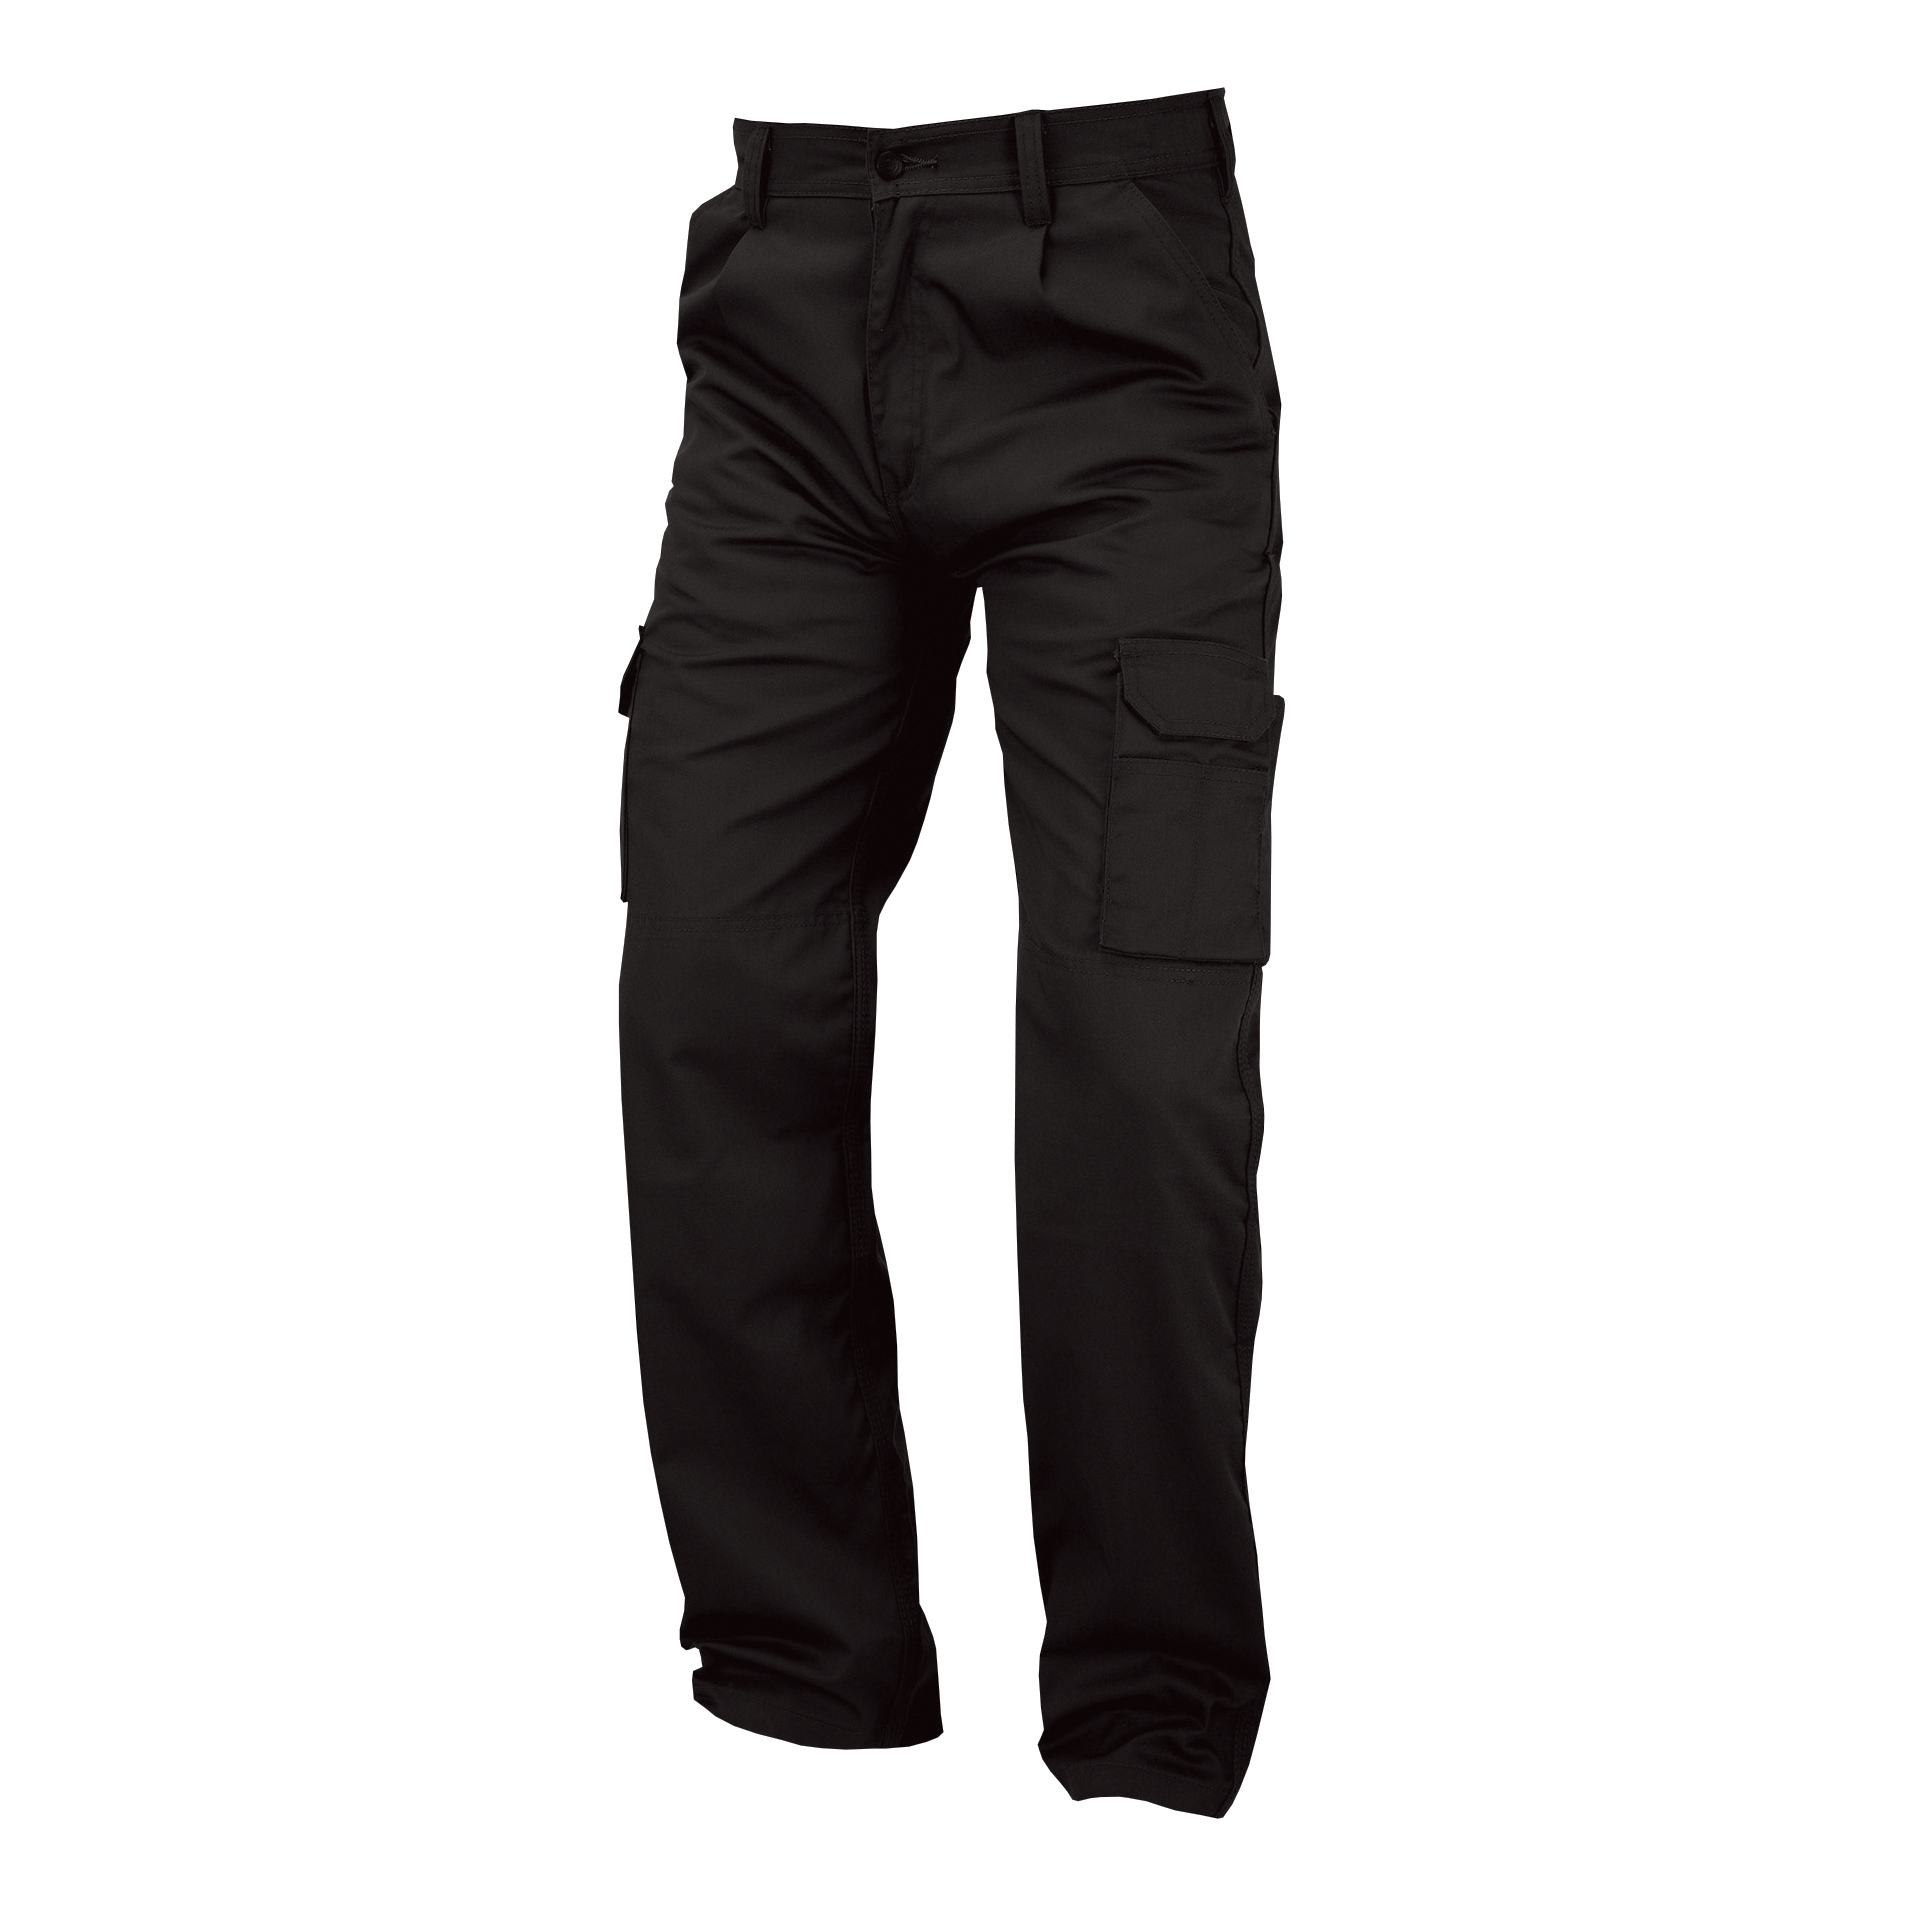 Combat Trouser Multi-functional Waist 48in Leg 29in Black Ref PCTHWBL48S *Approx 3 Day Leadtime*